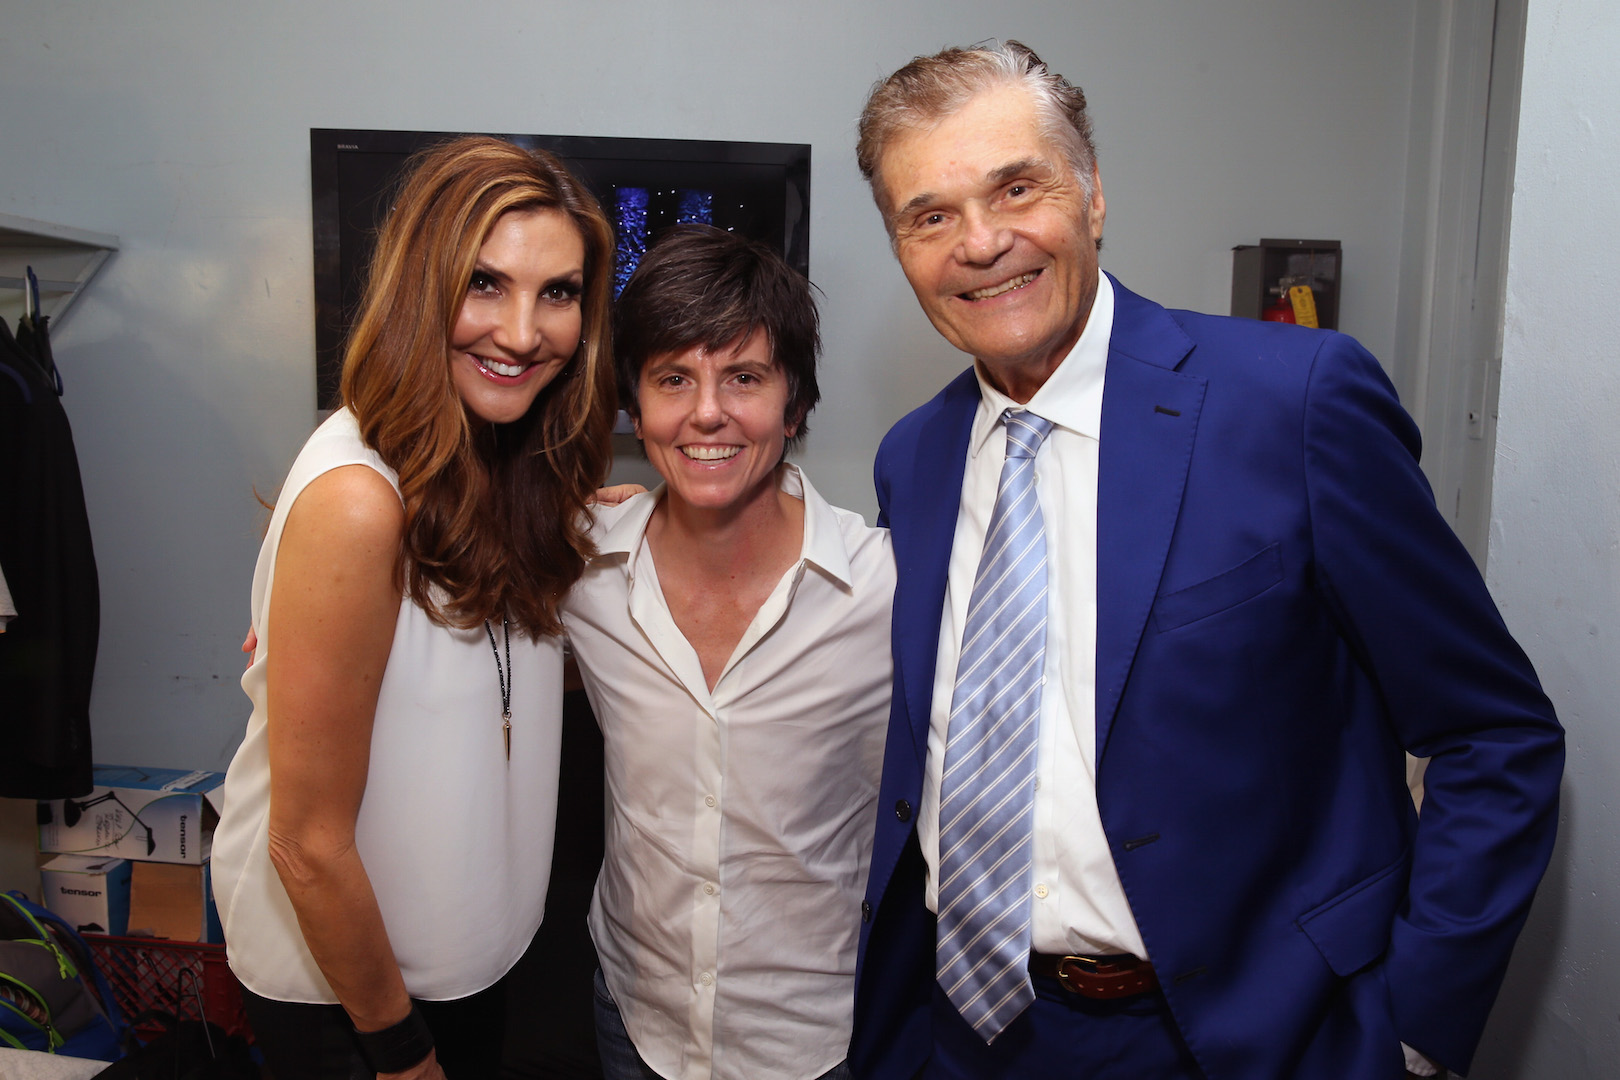 LOS ANGELES, CA - OCTOBER 10:  (L-R) Comedians Heather McDonald, Tig Notaro and host Fred Willard pose backstage during the 9th Annual Comedy Celebration, presented by the International Myeloma Foundation, at The Wilshire Ebell Theatre on October 10, 2015 in Los Angeles, California.  (Photo by Jesse Grant/Getty Images for for International Myeloma Foundation)